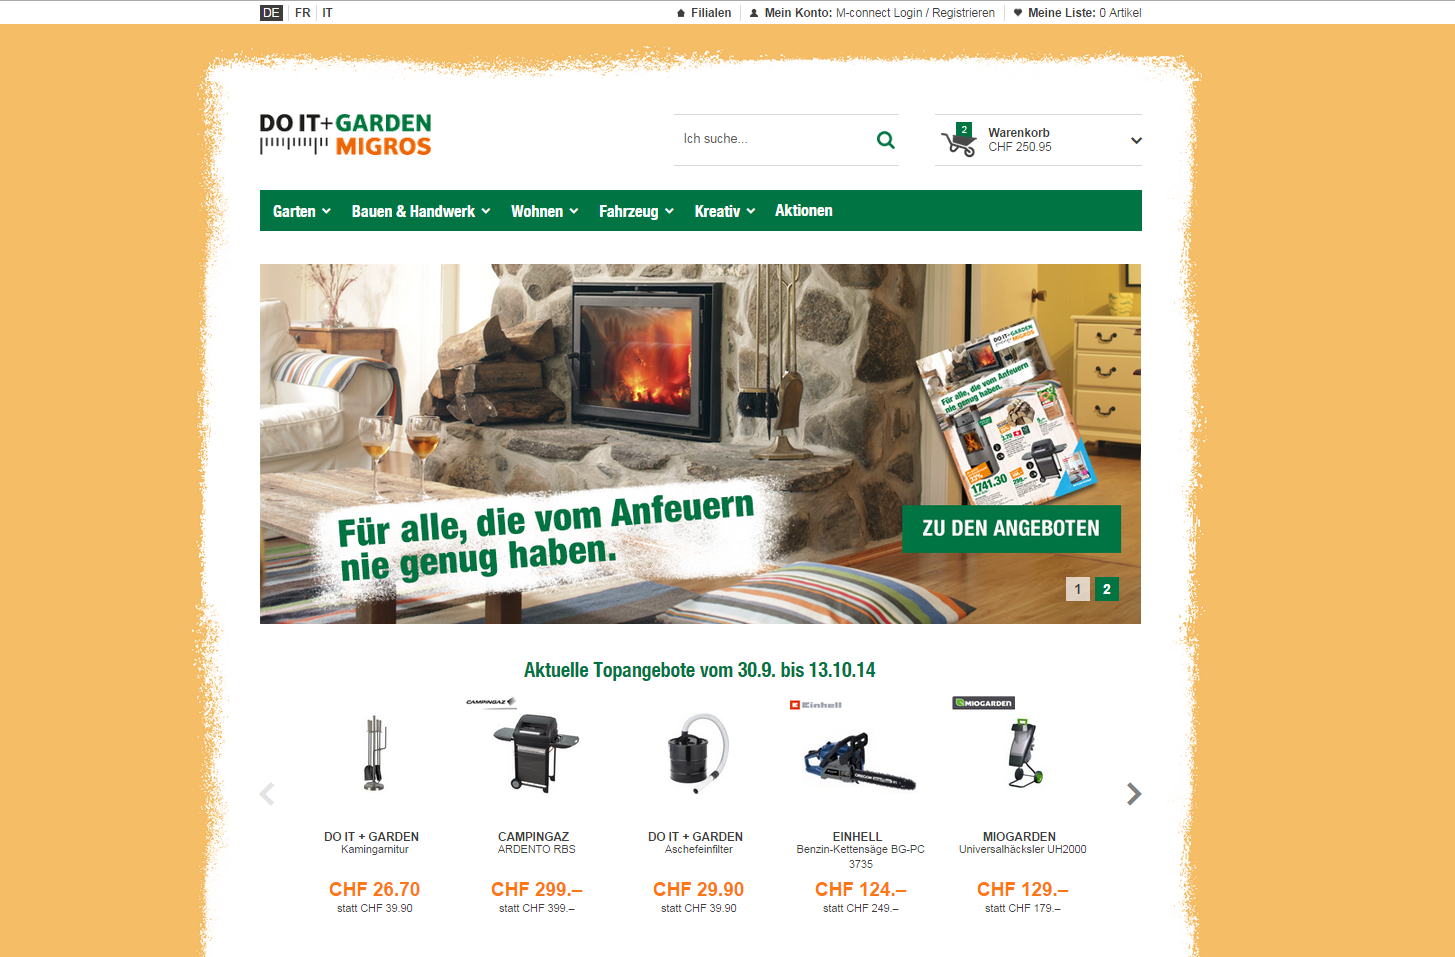 baumarkt rallye migros zieht mit do it garden nun. Black Bedroom Furniture Sets. Home Design Ideas